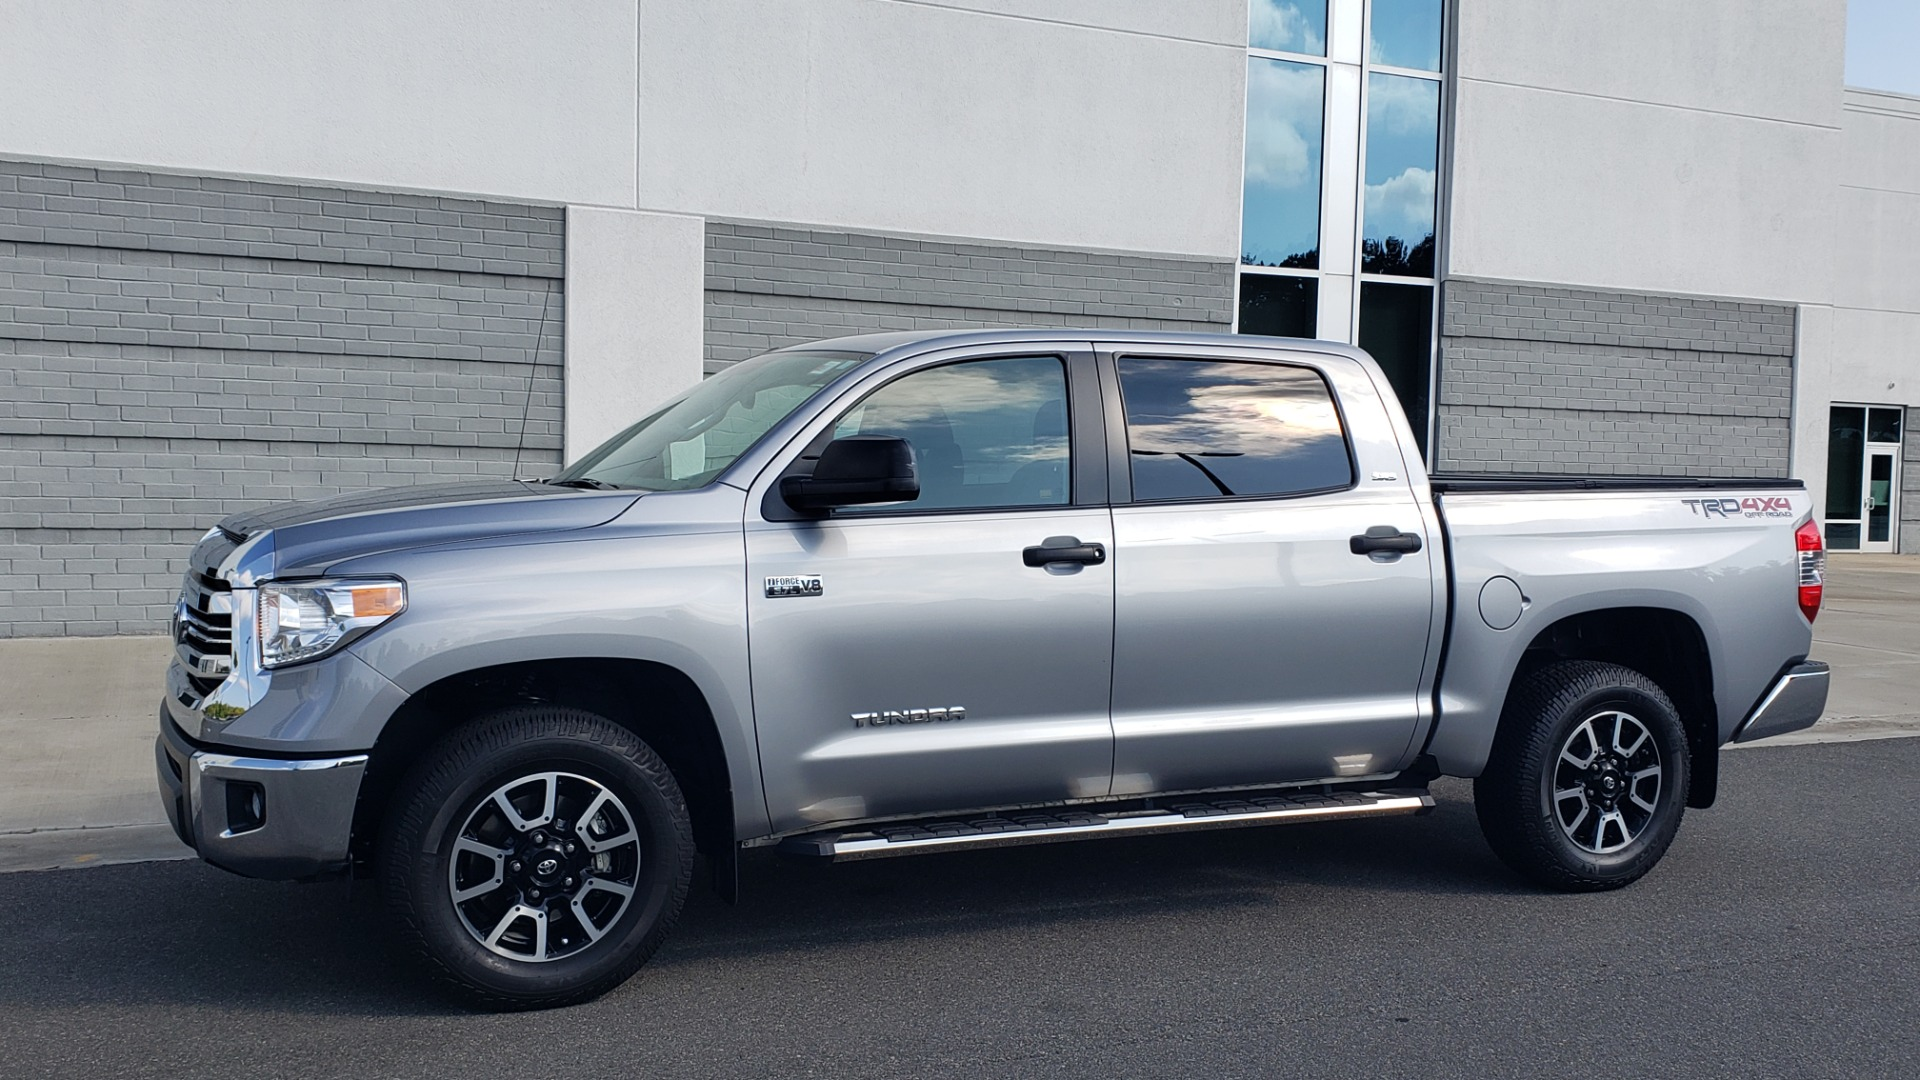 Used 2017 Toyota TUNDRA 4WD SR5 CREWMAX / 5.7L V8 / 6-SPD AUTO / NAV / REARVIEW for sale $44,395 at Formula Imports in Charlotte NC 28227 4